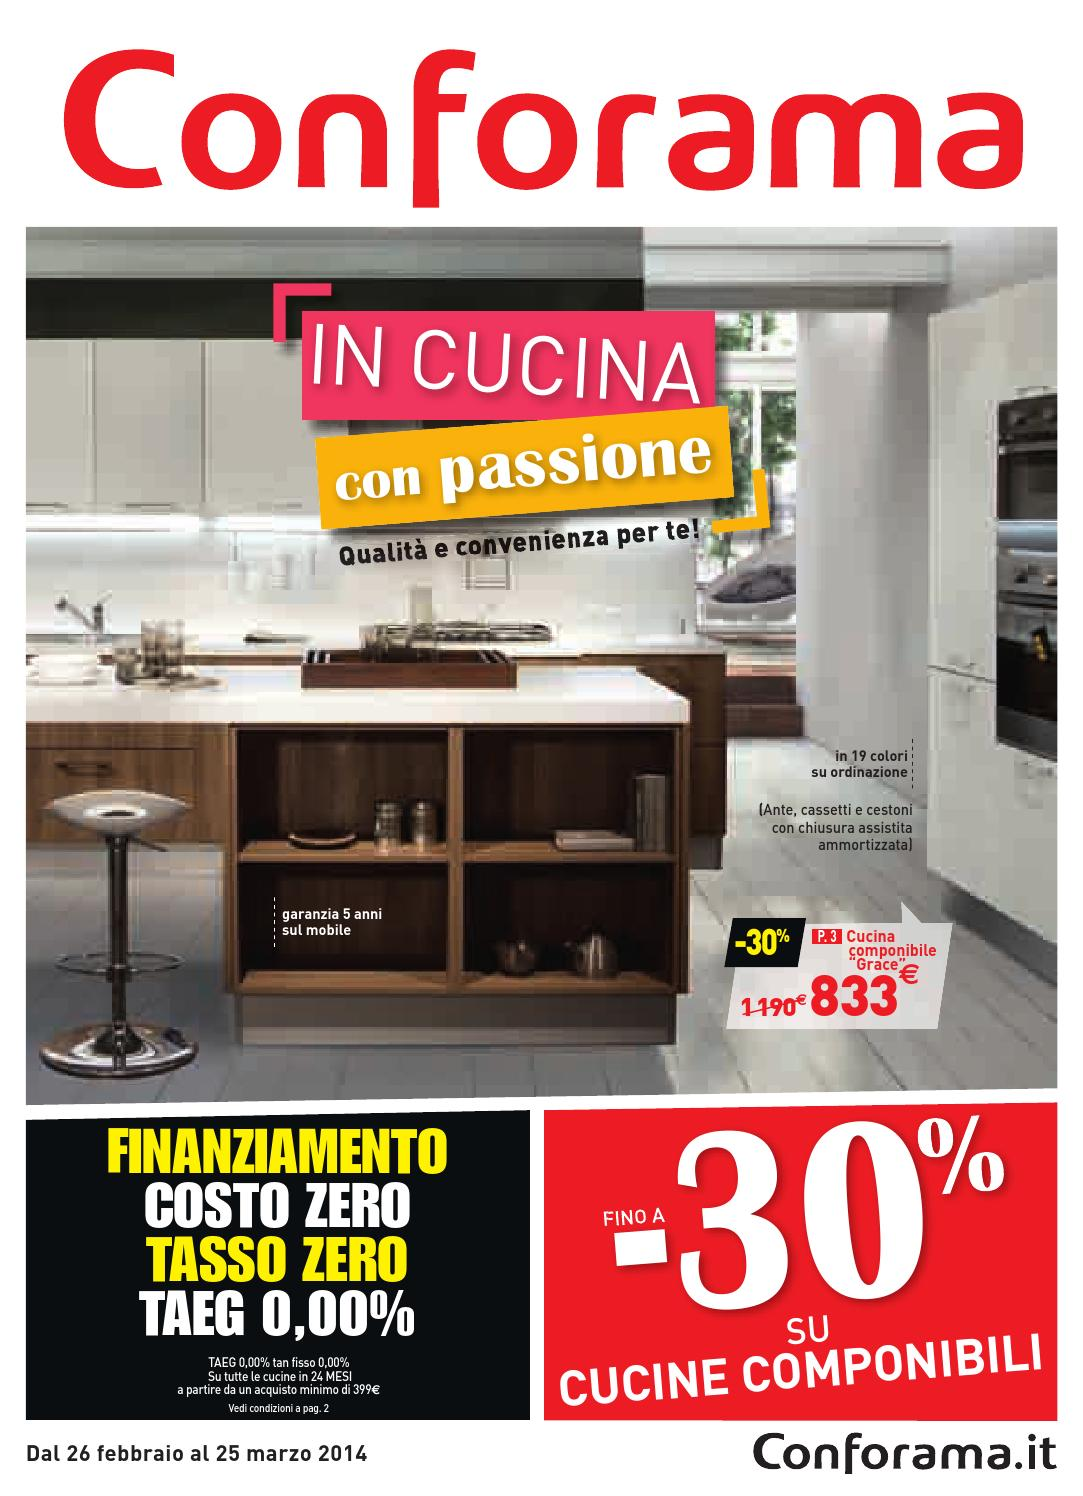 Conforama cucina che passione by mobilpro issuu for Cucine complete in offerta